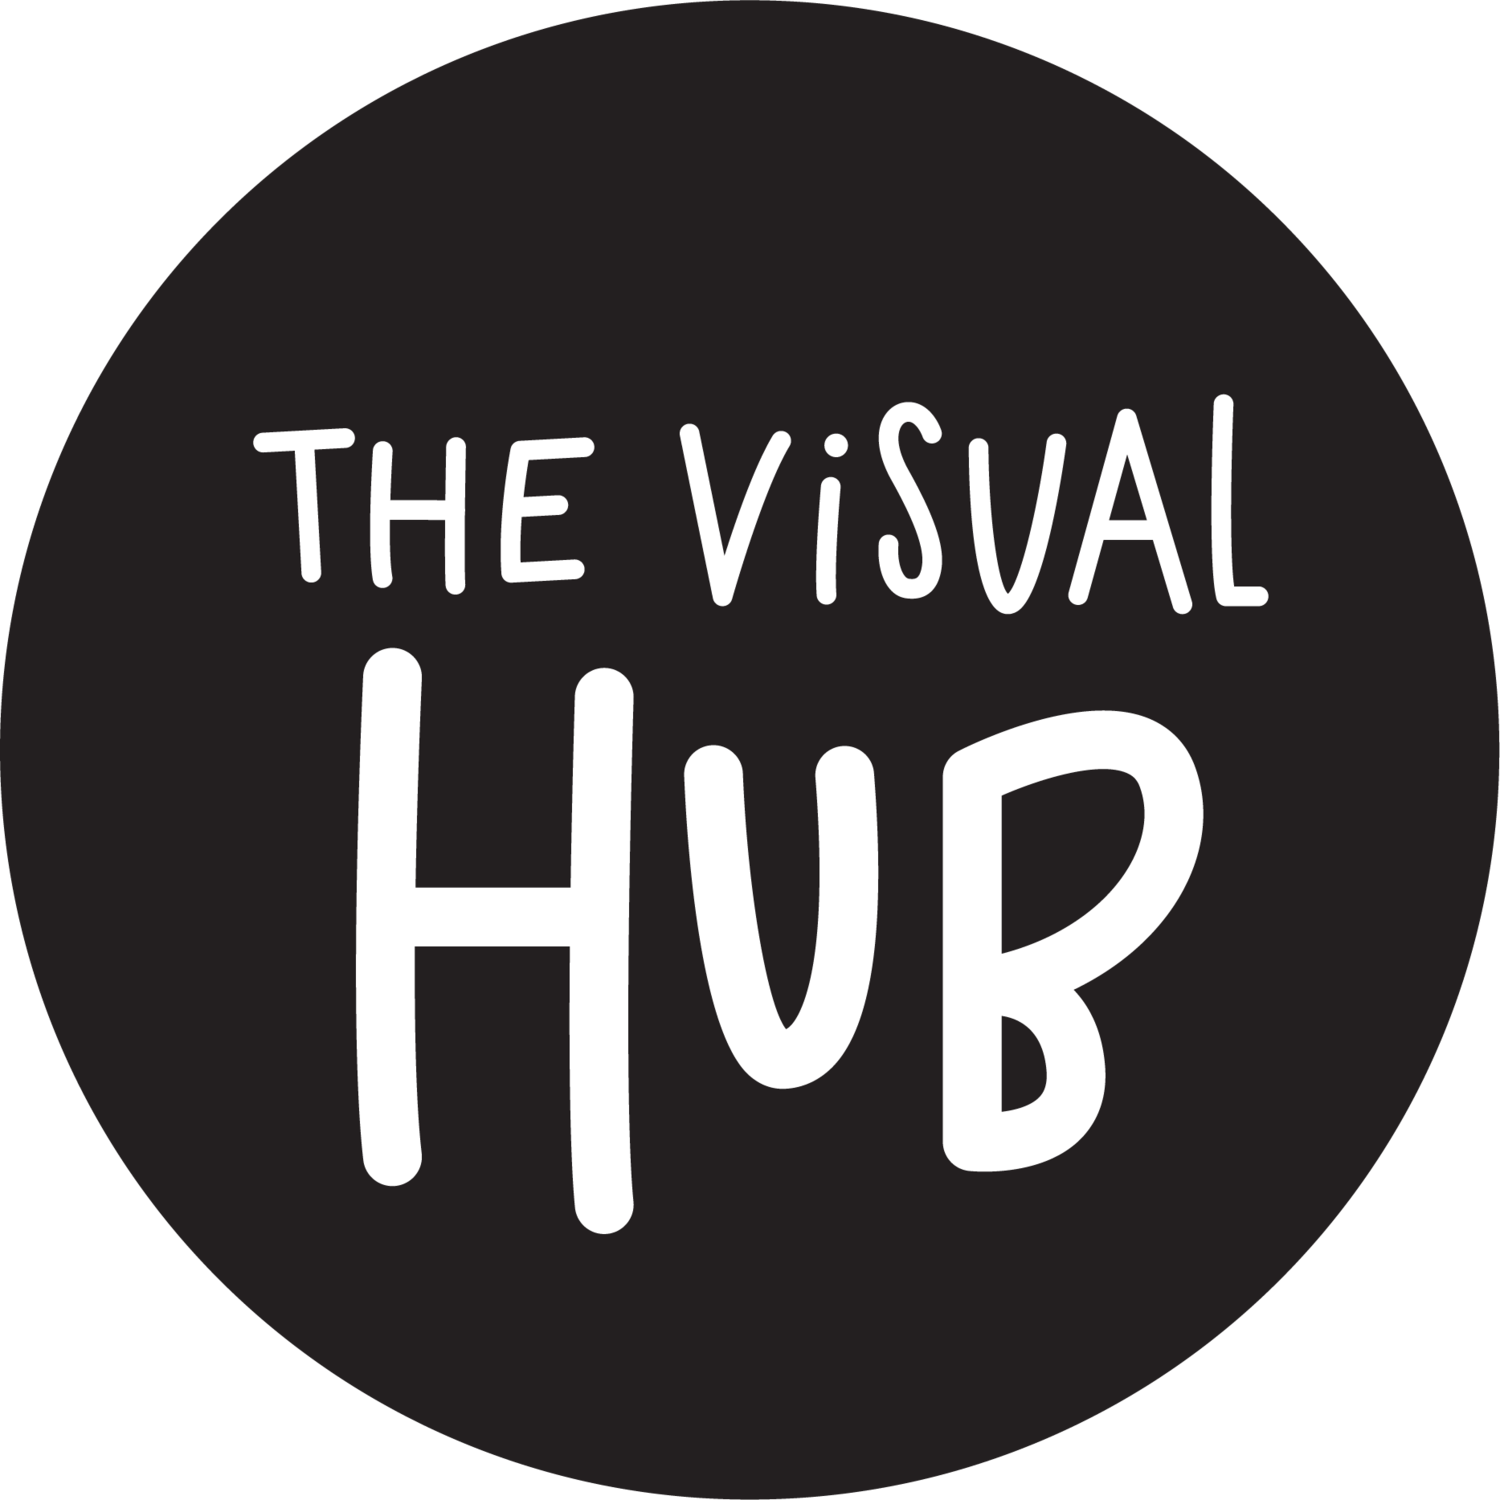 the Visual Hub